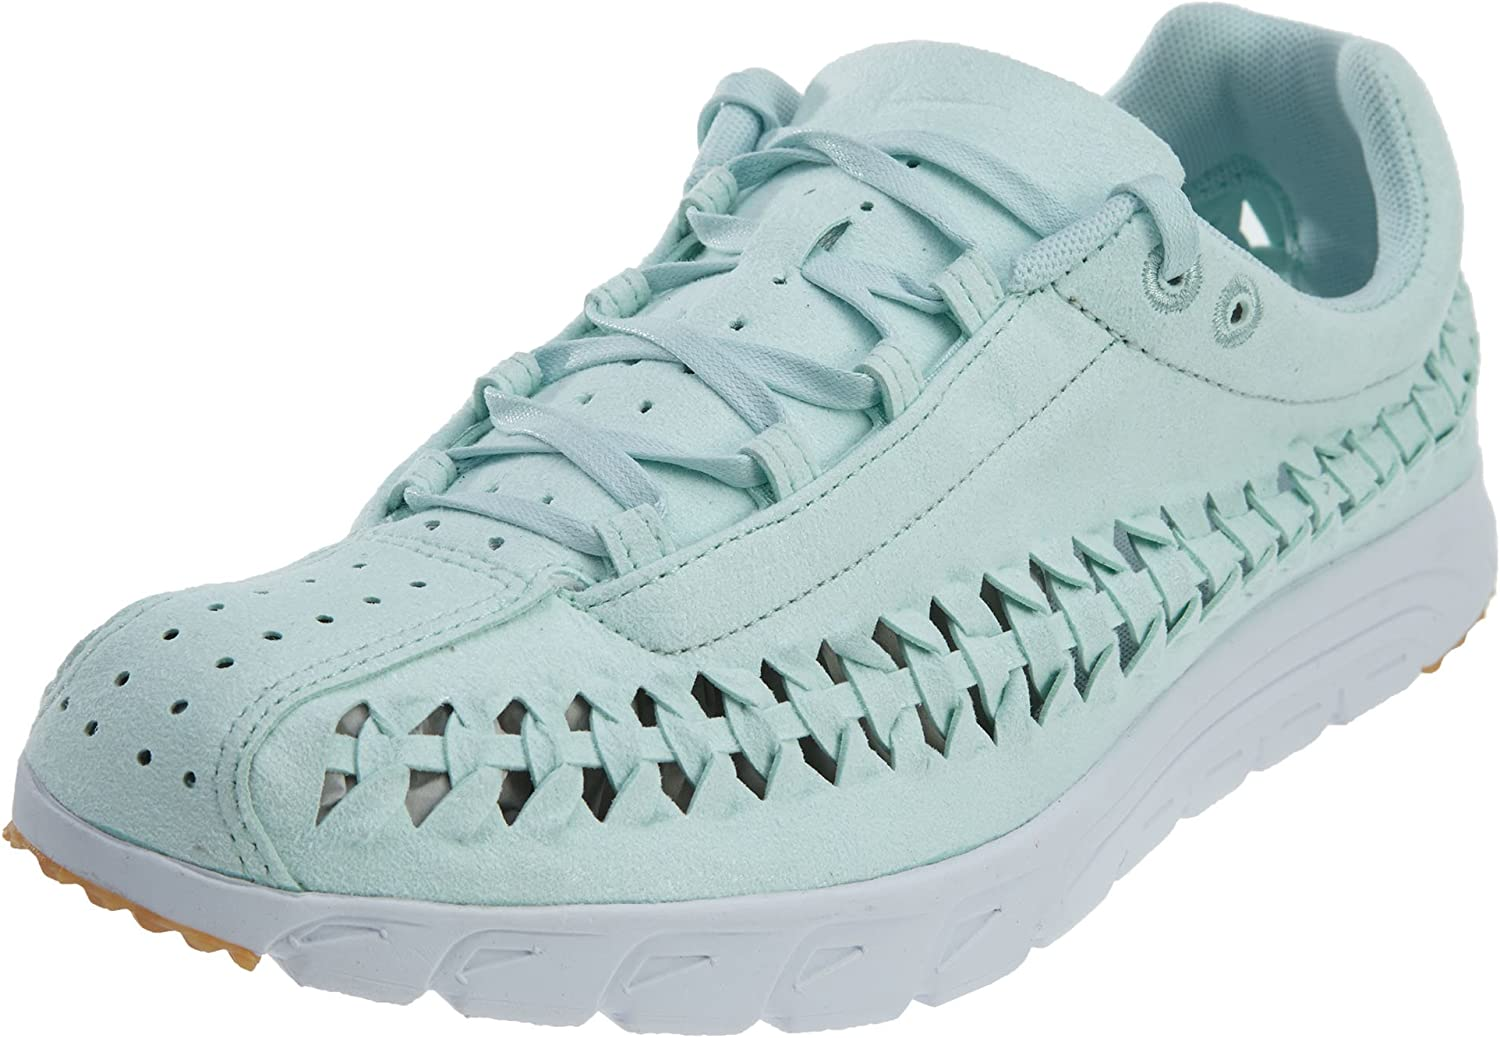 Nike Womens Mayfly Woven QS Suede Low Top Sneakers